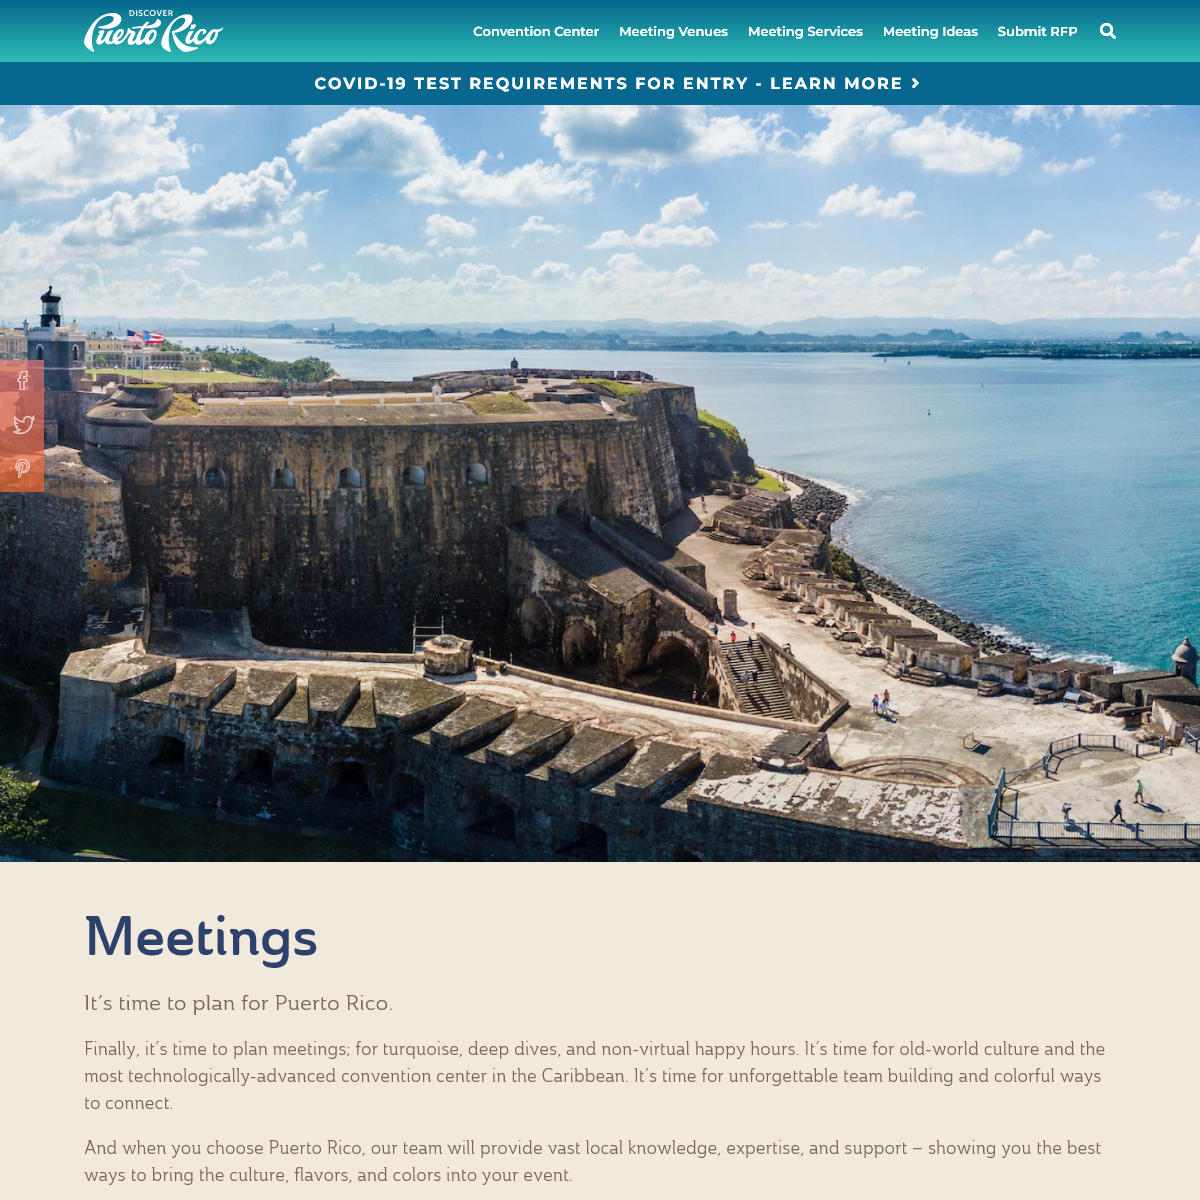 Meetings - Discover Puerto Rico